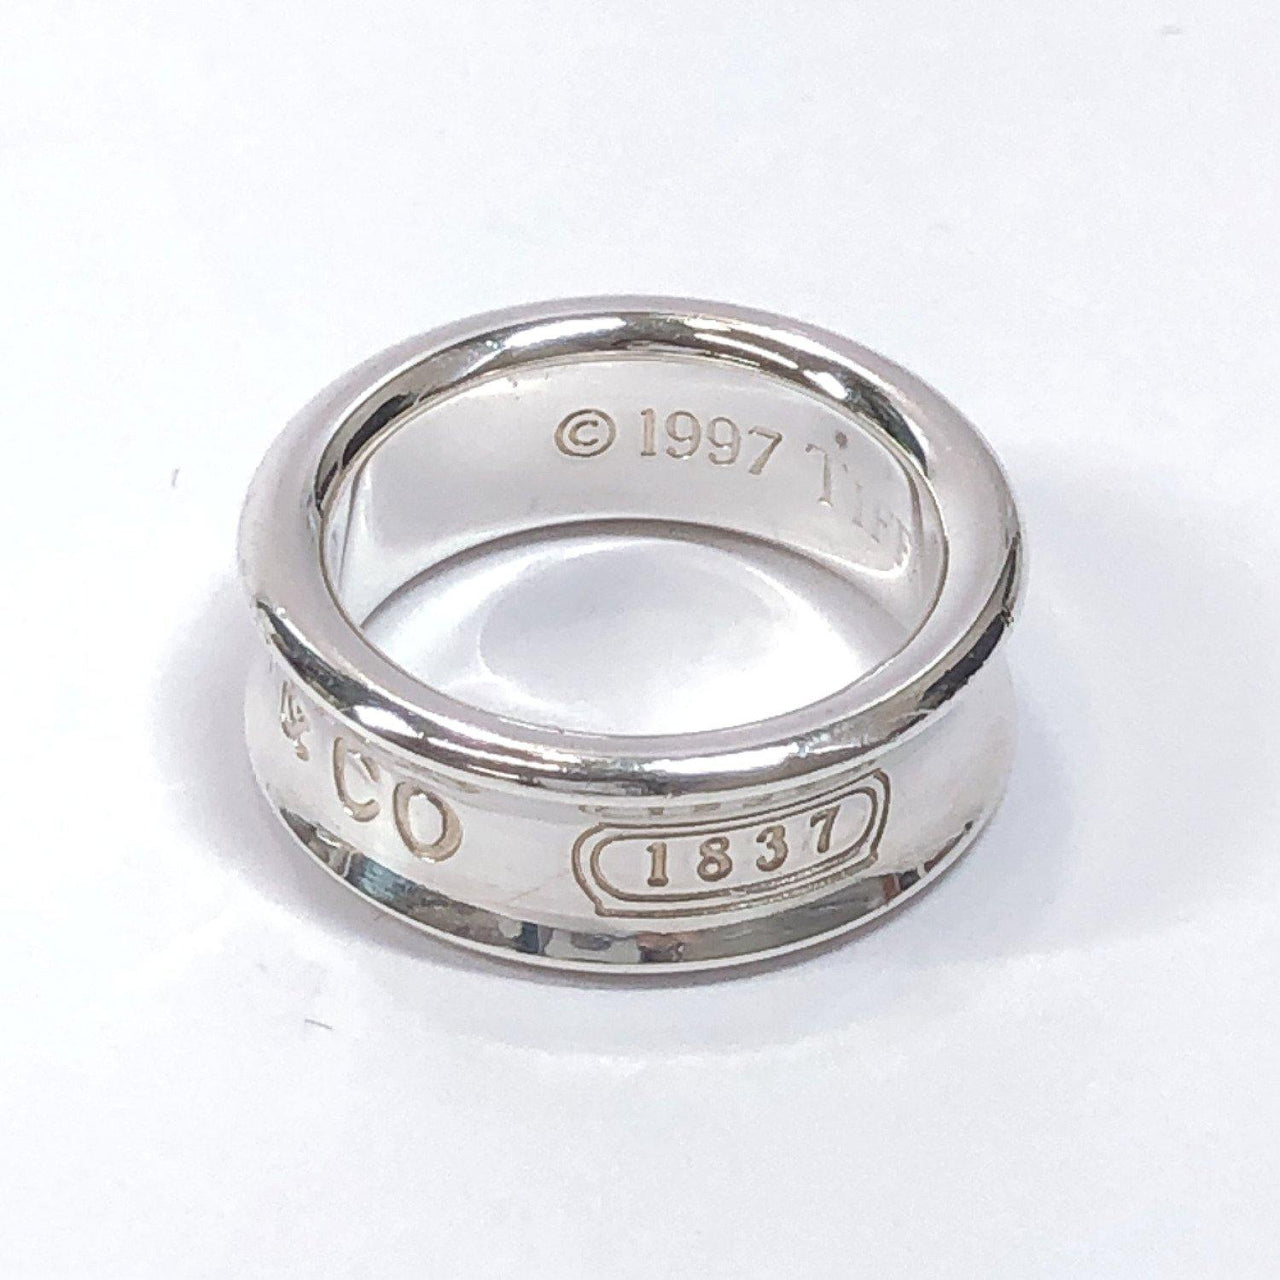 TIFFANY&Co. Ring 1837 Silver925 C Silver Women Used - JP-BRANDS.com